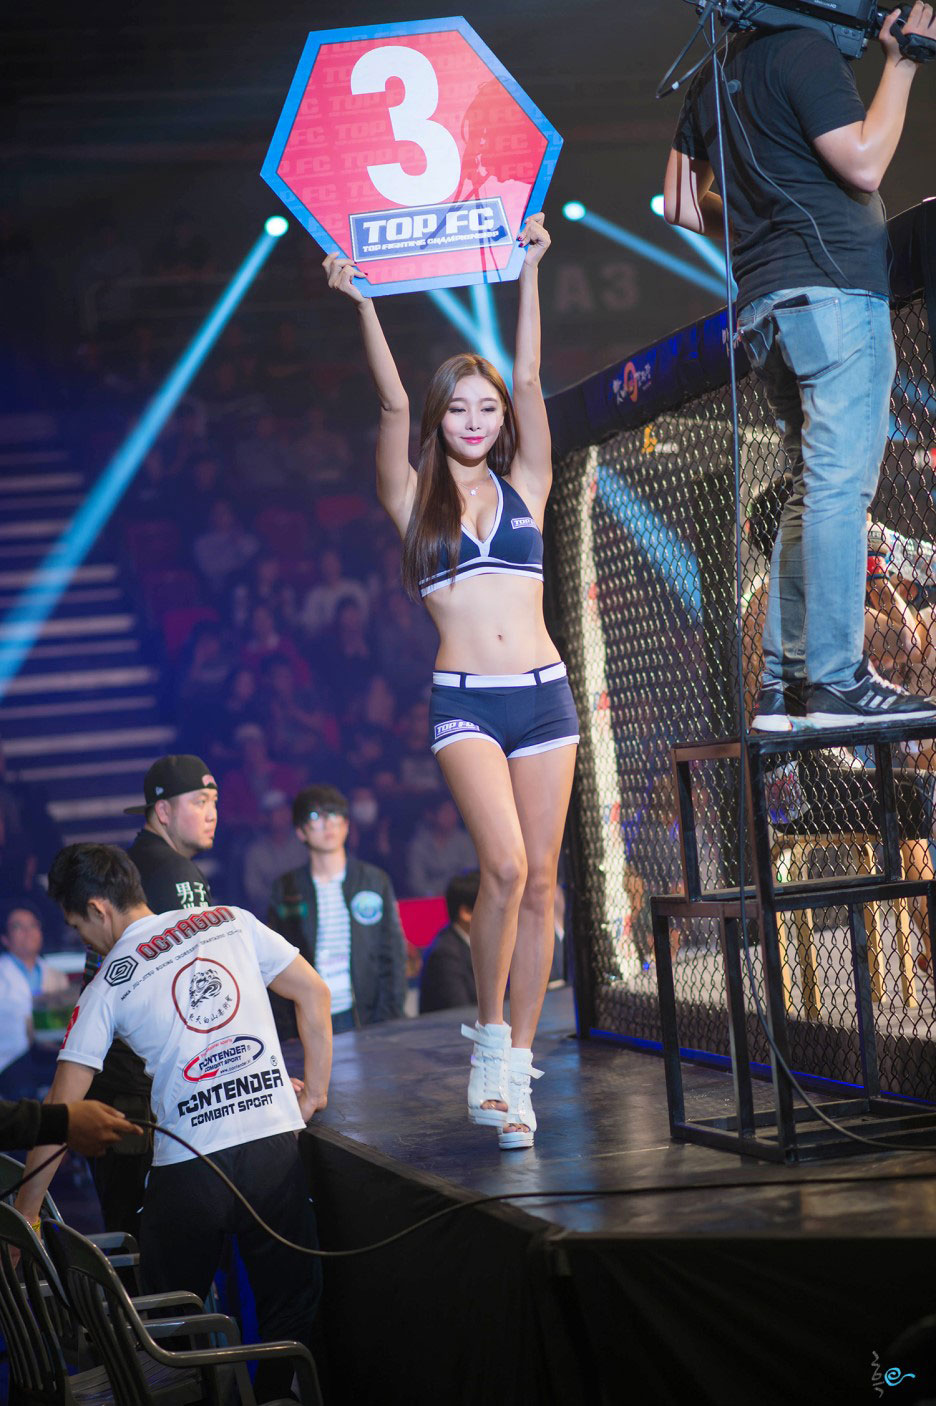 Min Je I Korean Road FC ring girl